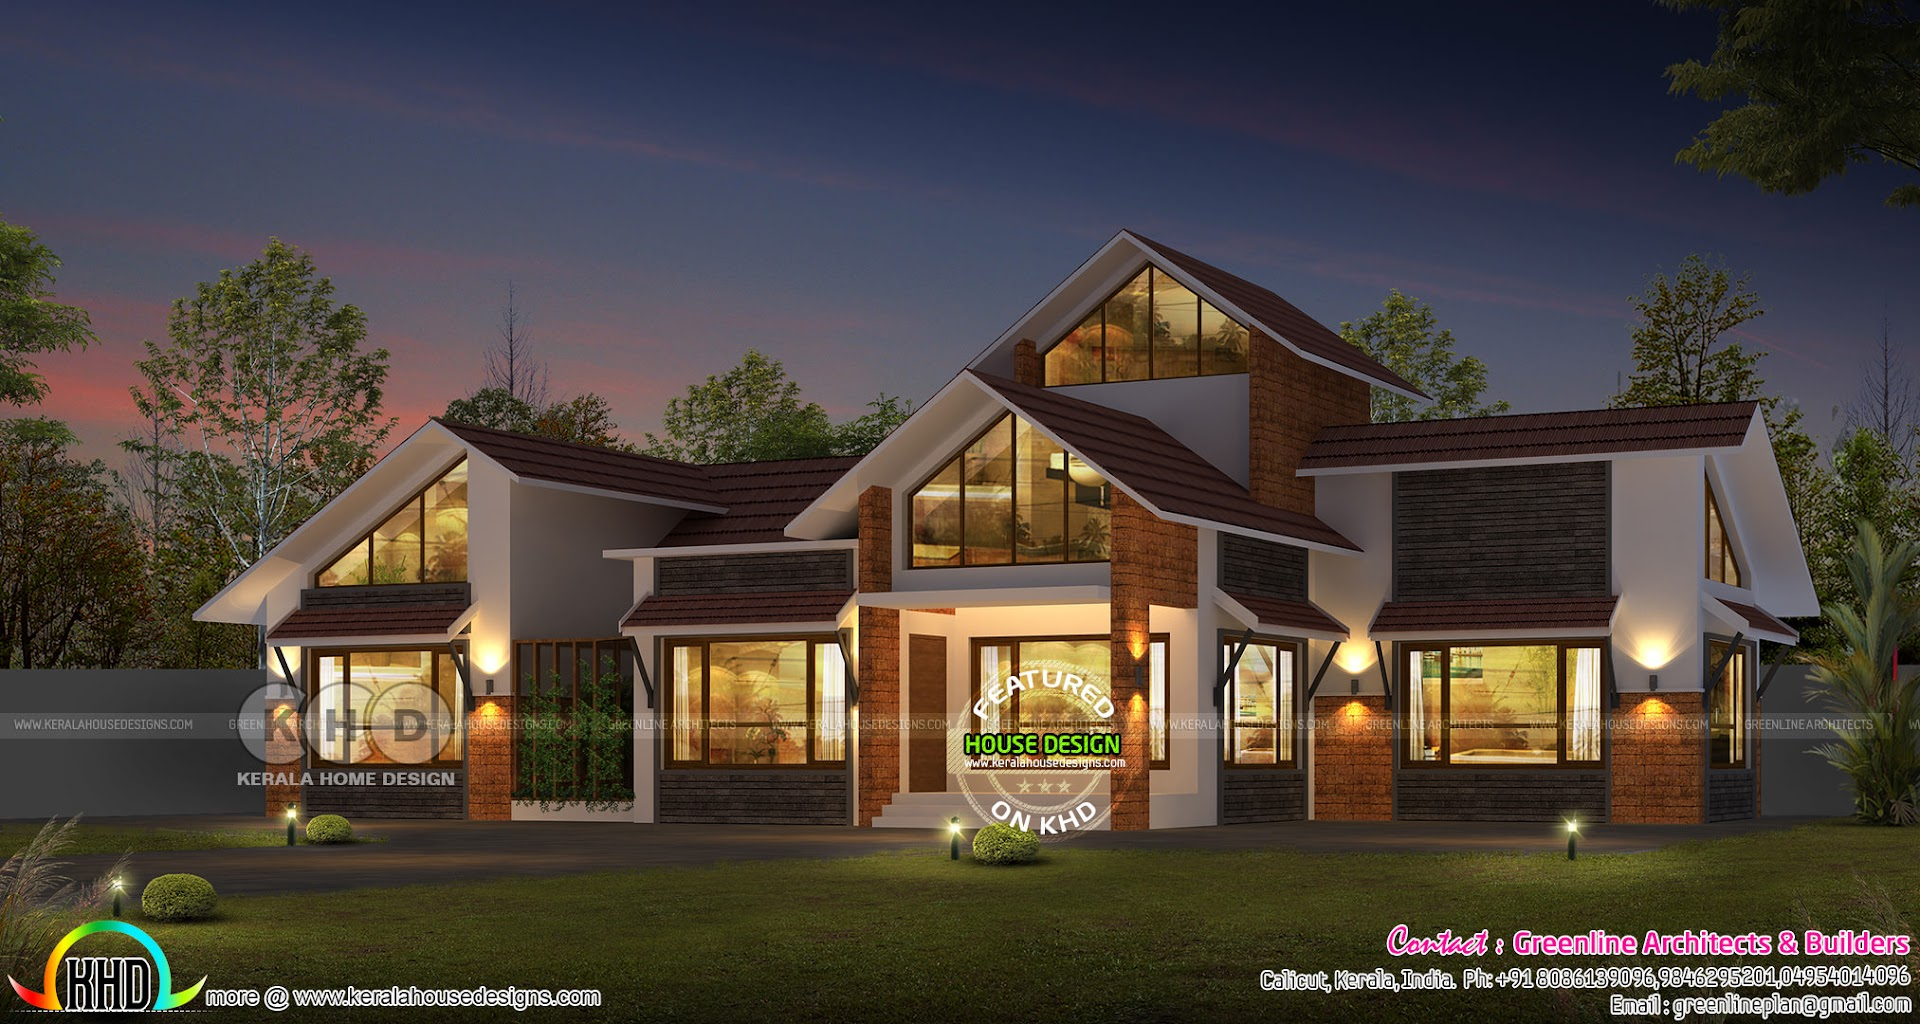 2300 Sq Ft 3 Bedroom Sloping Roof Home Kerala Home Design Bloglovin